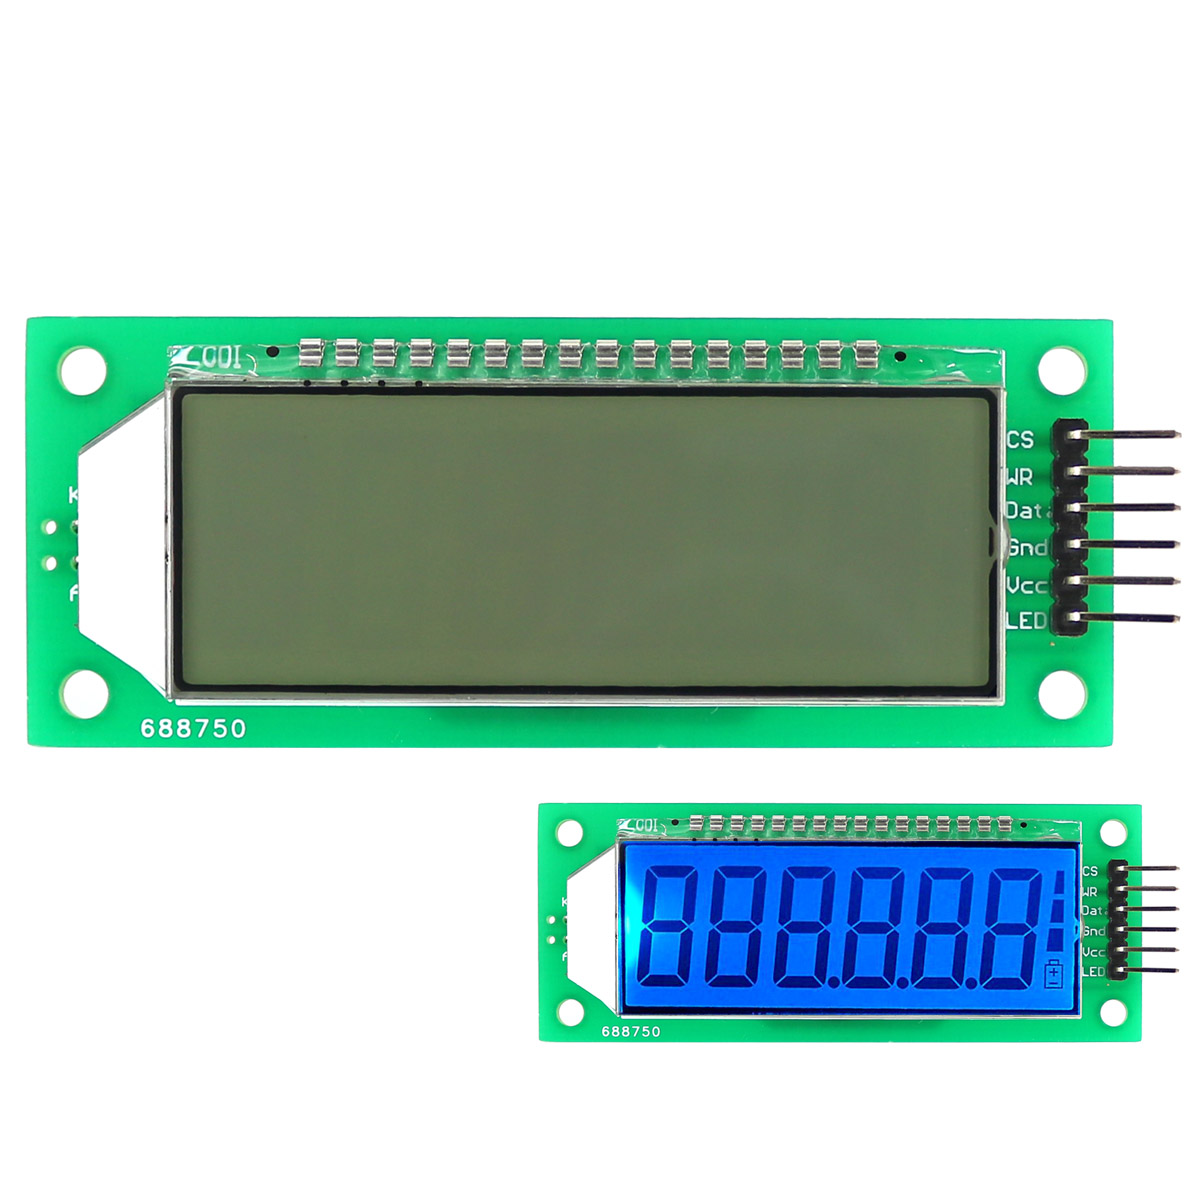 2.4 inch 6-Digit 7 Segment LCD Display Module Blue Backlit With Decimal Point / HT1621 LCD Driver IC for Arduino